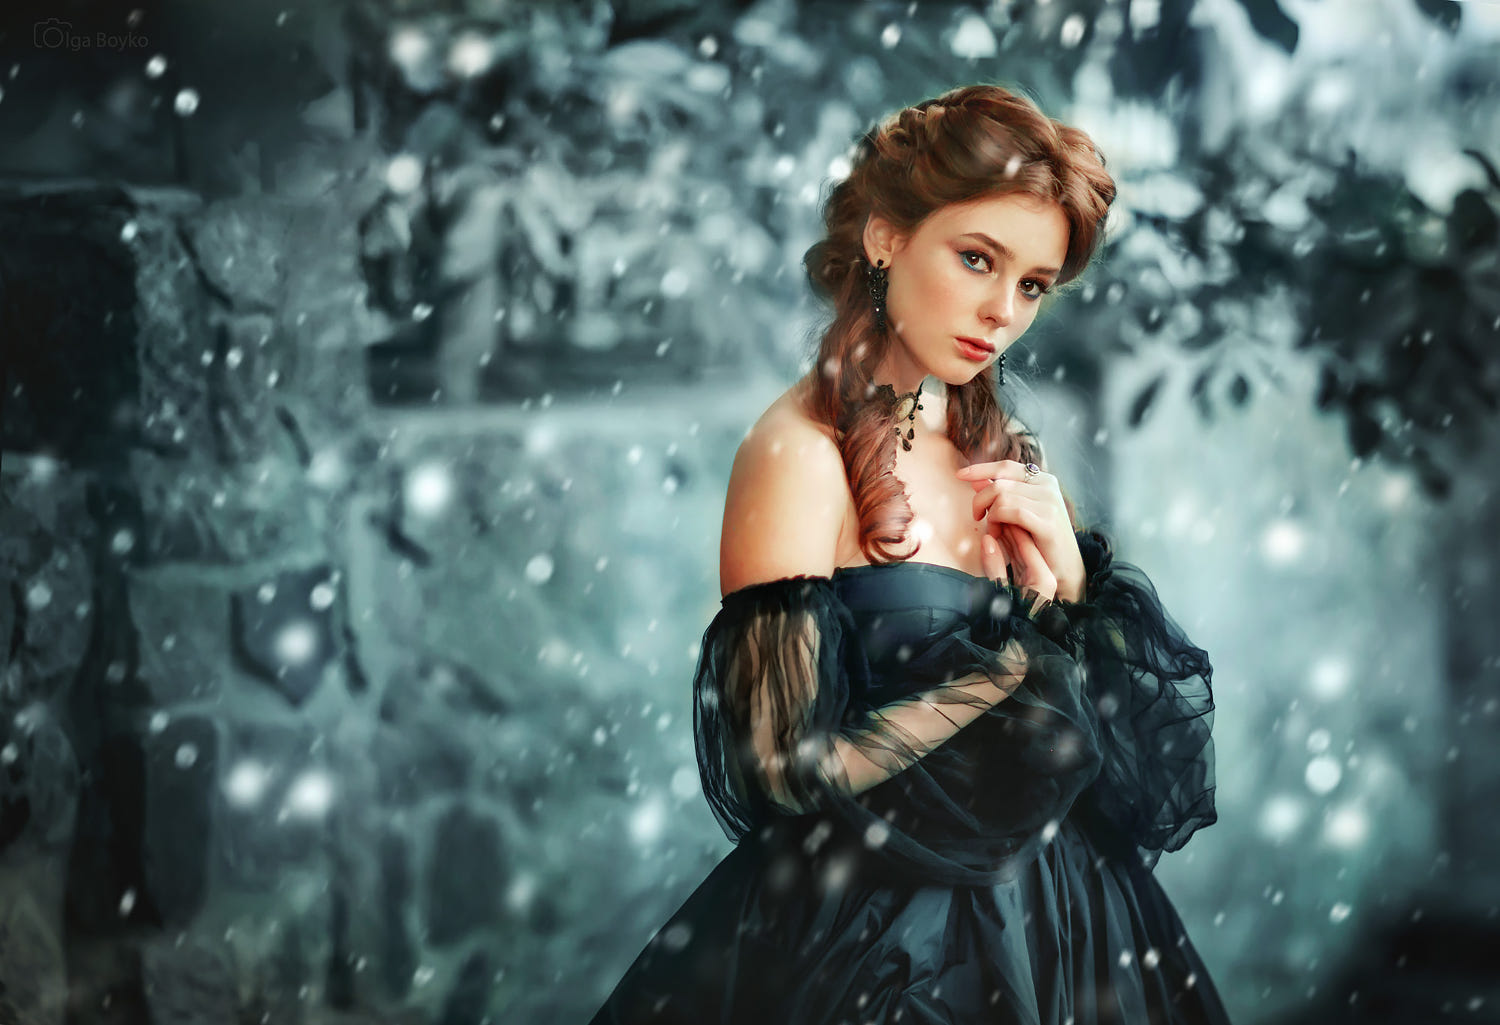 portrait photography snowy queen by olga boyko